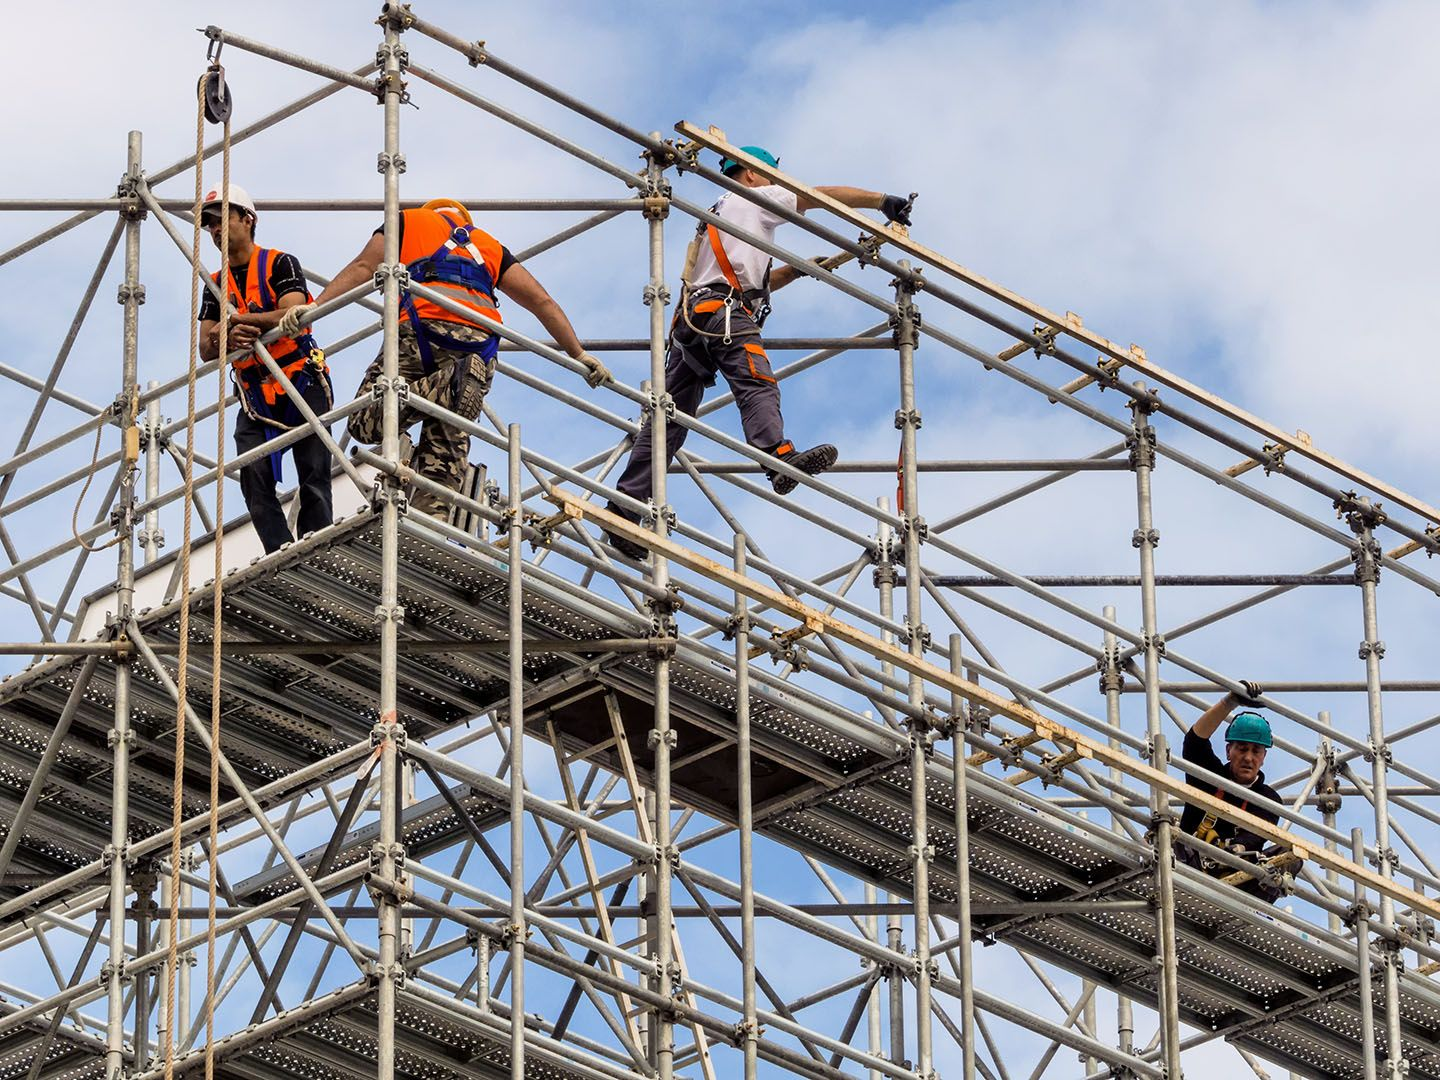 Construction workers on scaffolding